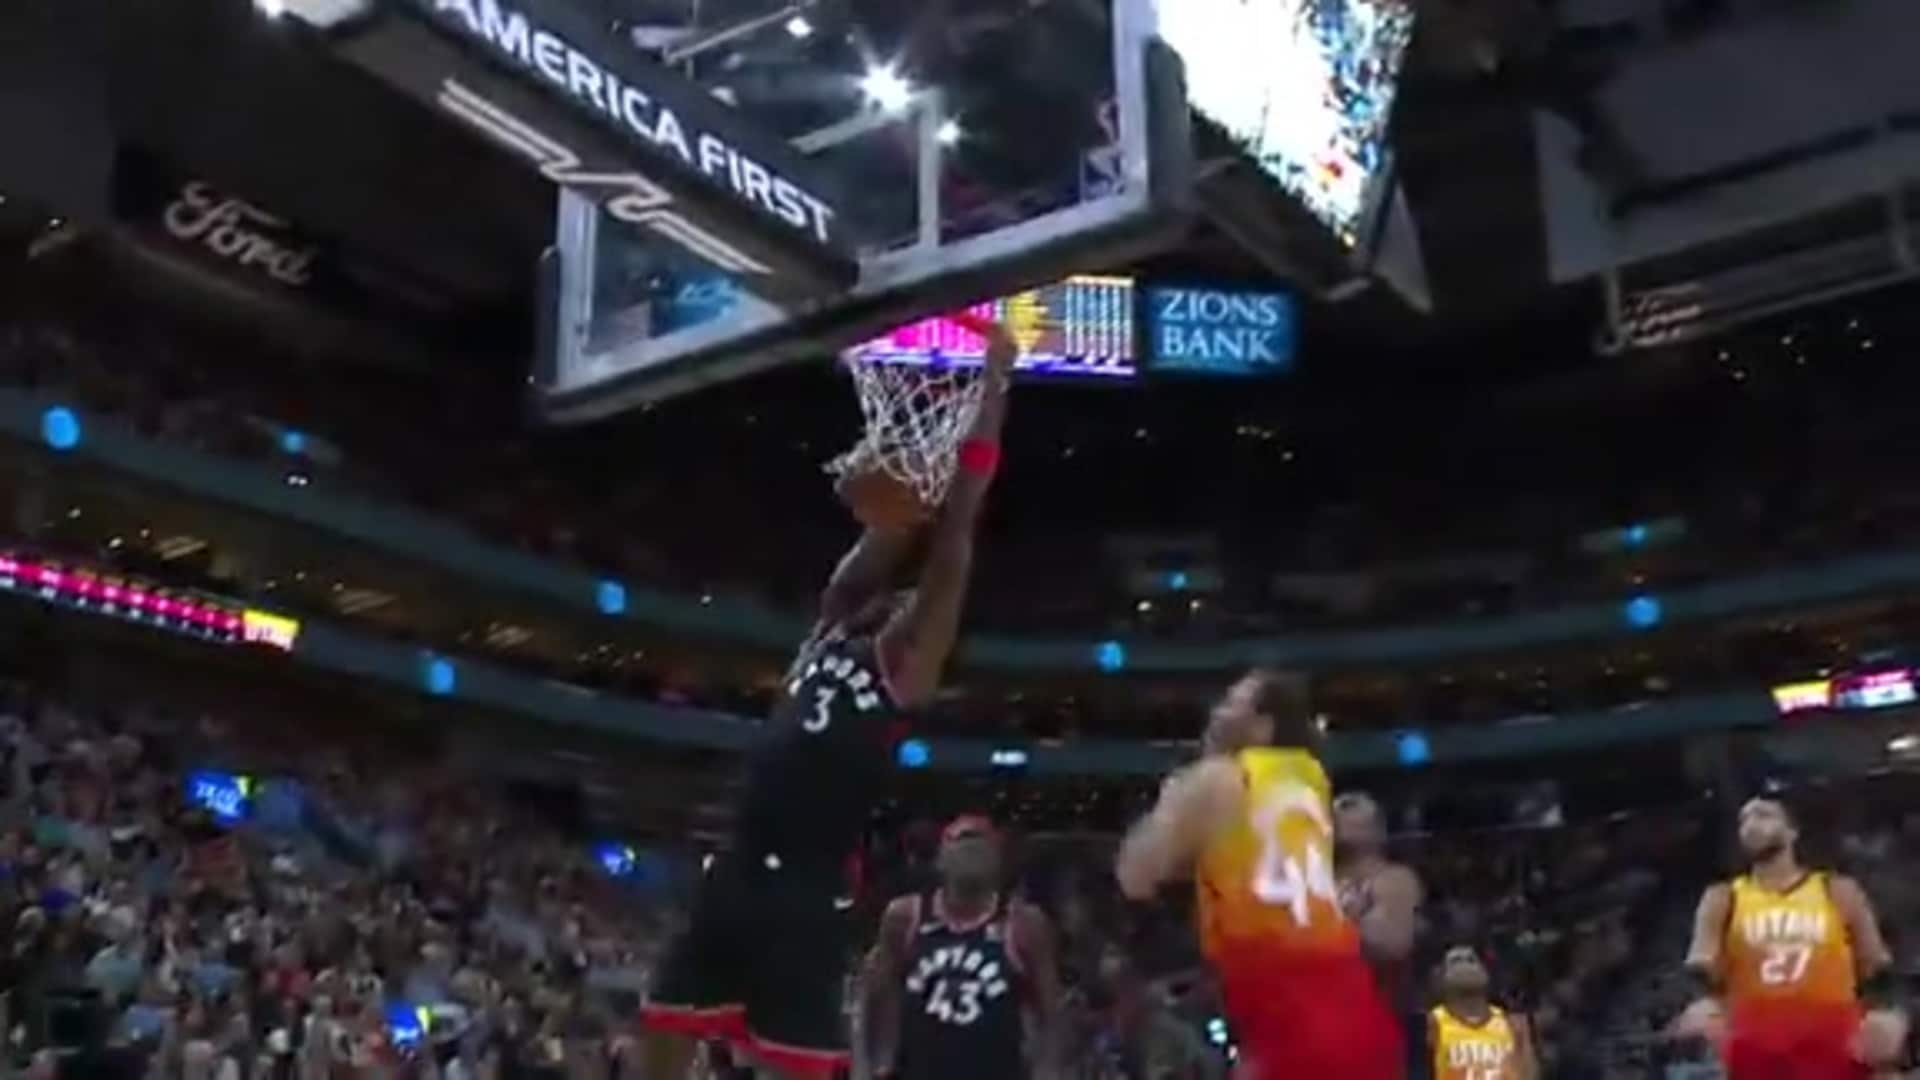 Raptors Highlights: Anunoby Dunk - March 9, 2020